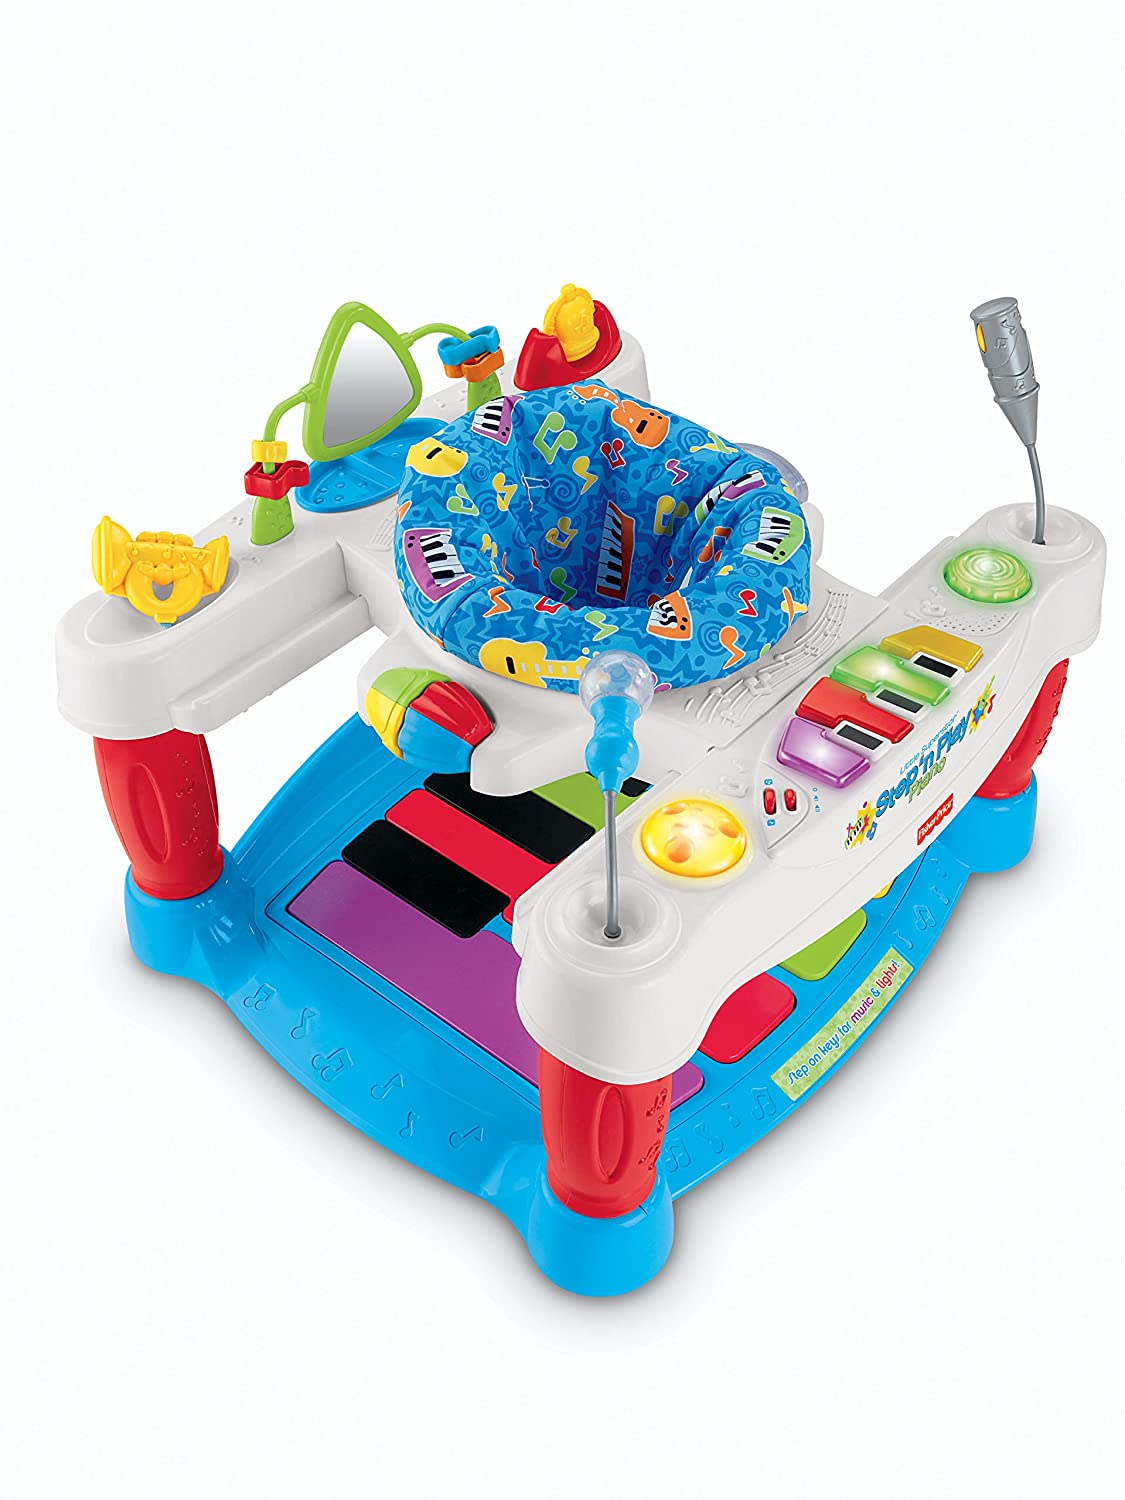 92c633259 Amazon.com   Fisher-Price Step  n Play Entertainer Piano   Baby ...